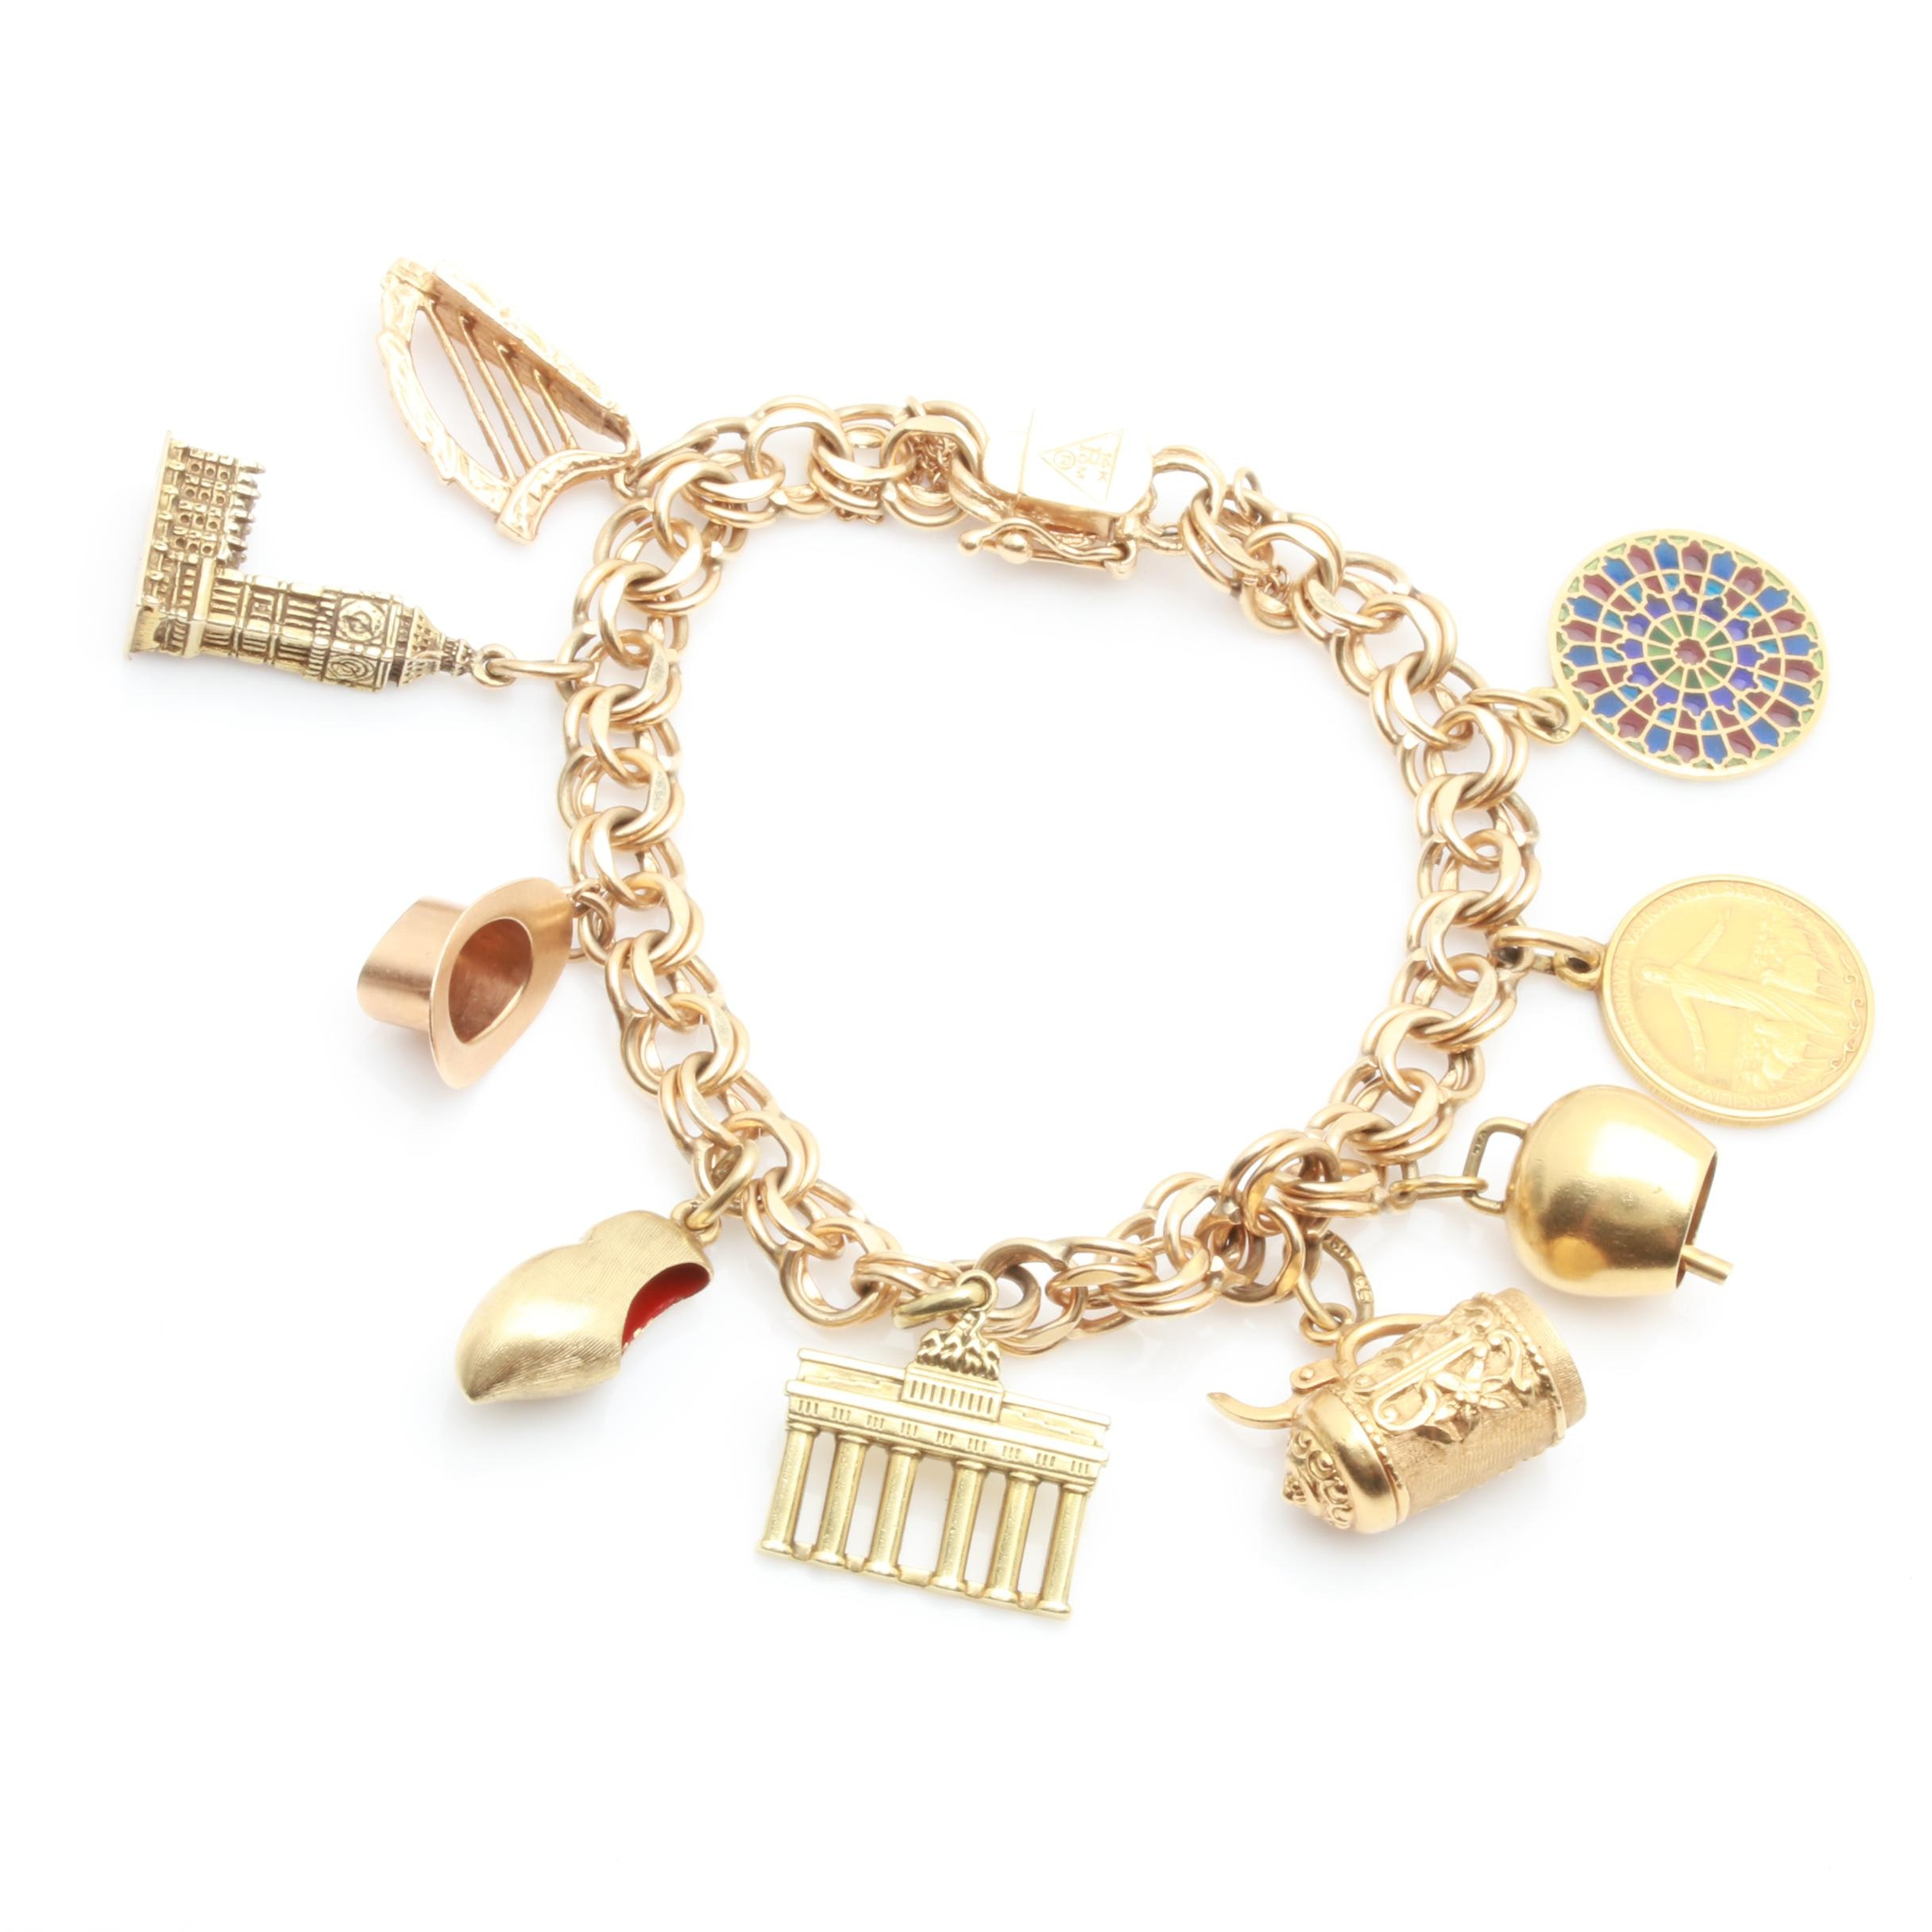 18K,14K and 9K Yellow Gold Charm Bracelet Including  Plique-à-Jour Enamel